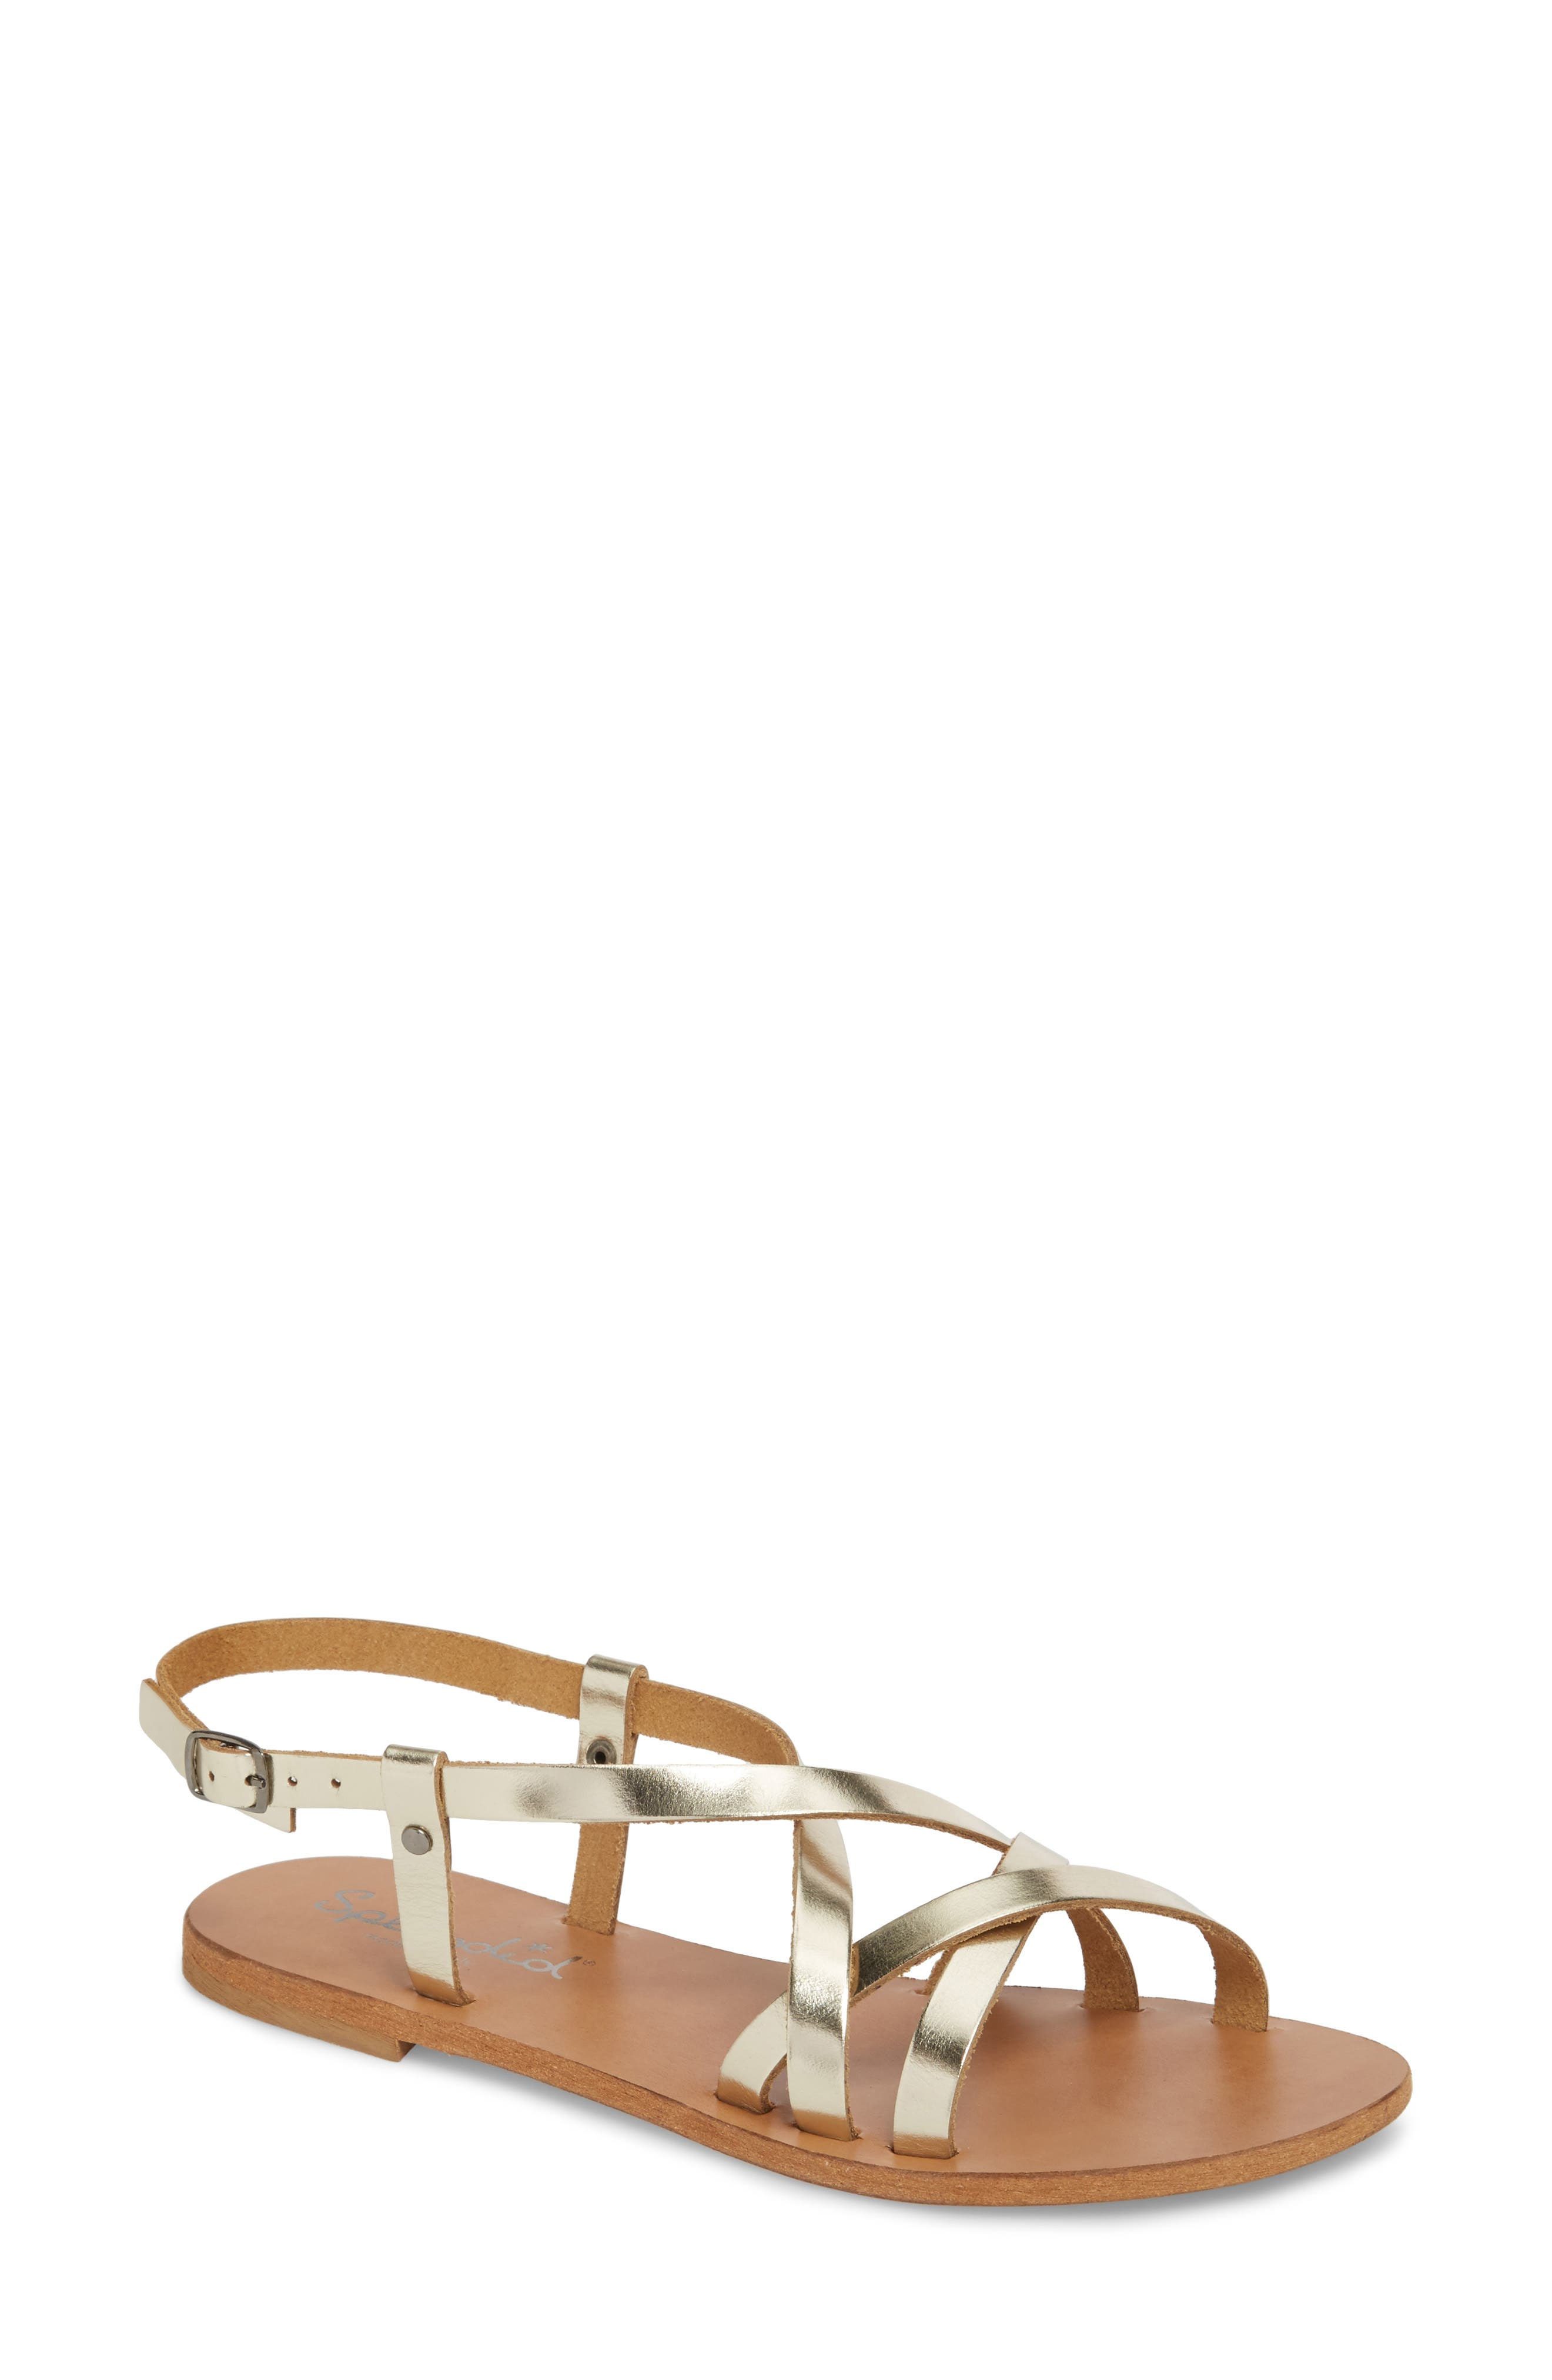 Bowen Sandal,                             Main thumbnail 1, color,                             Platino Leather